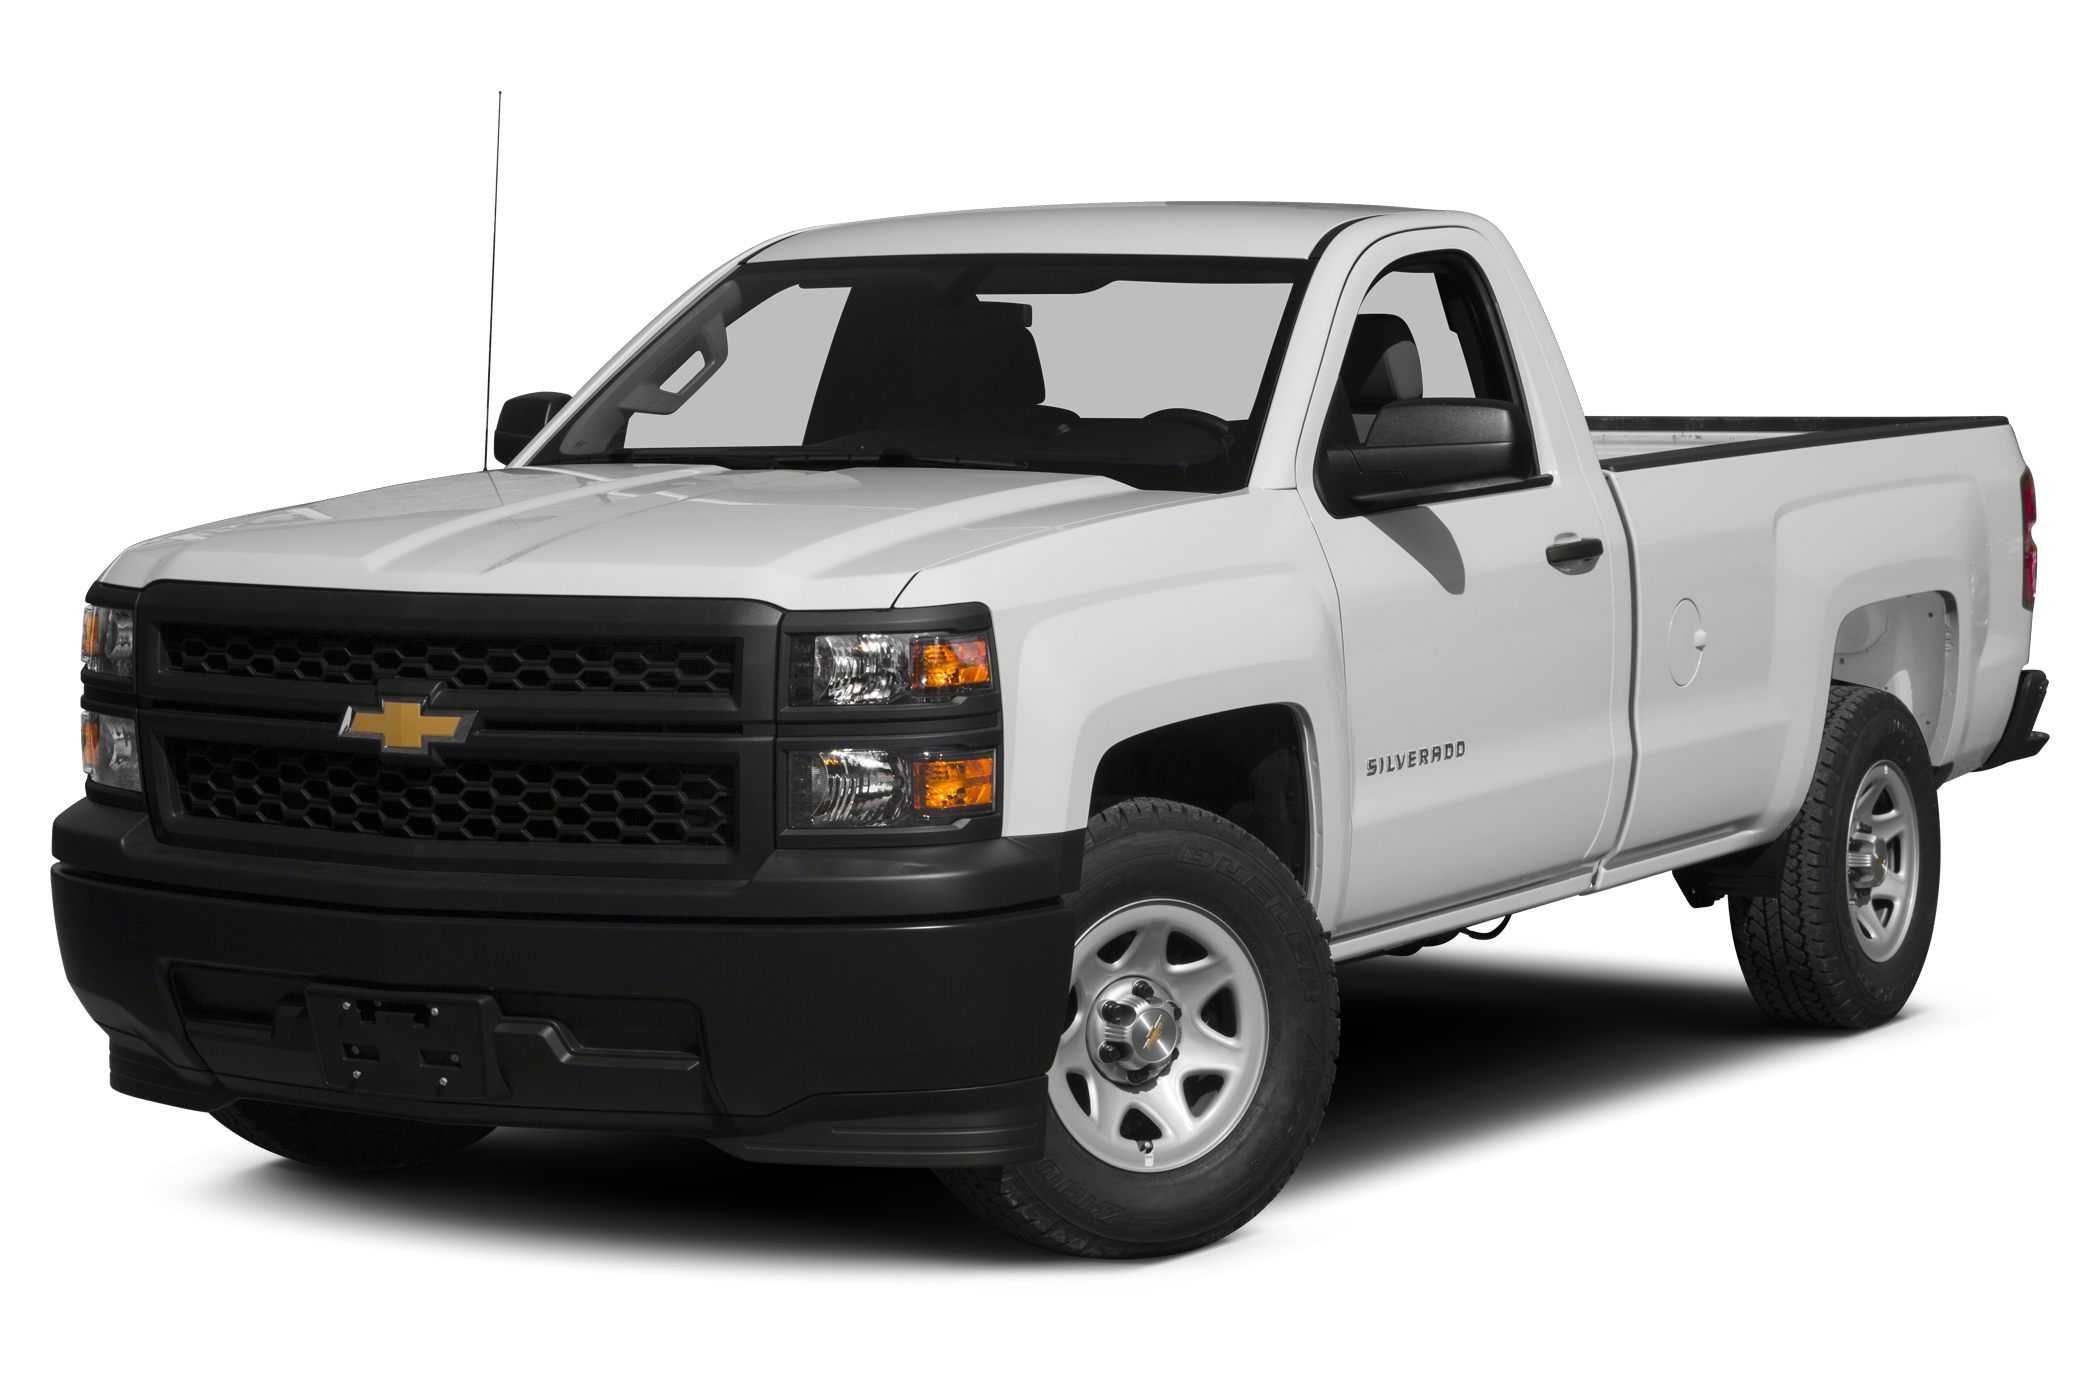 2014 Chevrolet Silverado 1500 1LT Crew Cab Pickup for sale in Shreveport for $34,995 with 11,044 miles